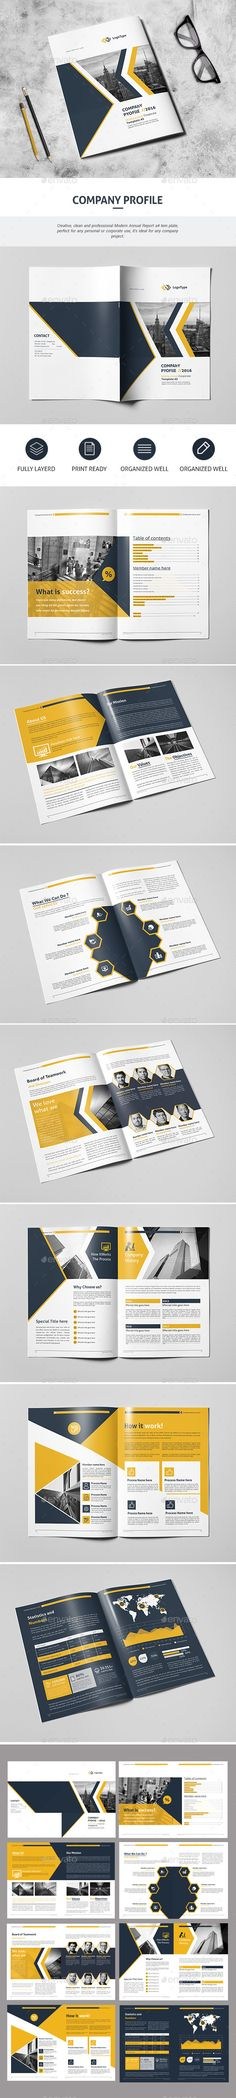 Annual Report Grid layouts, Annual reports and Layouts - business company profile template